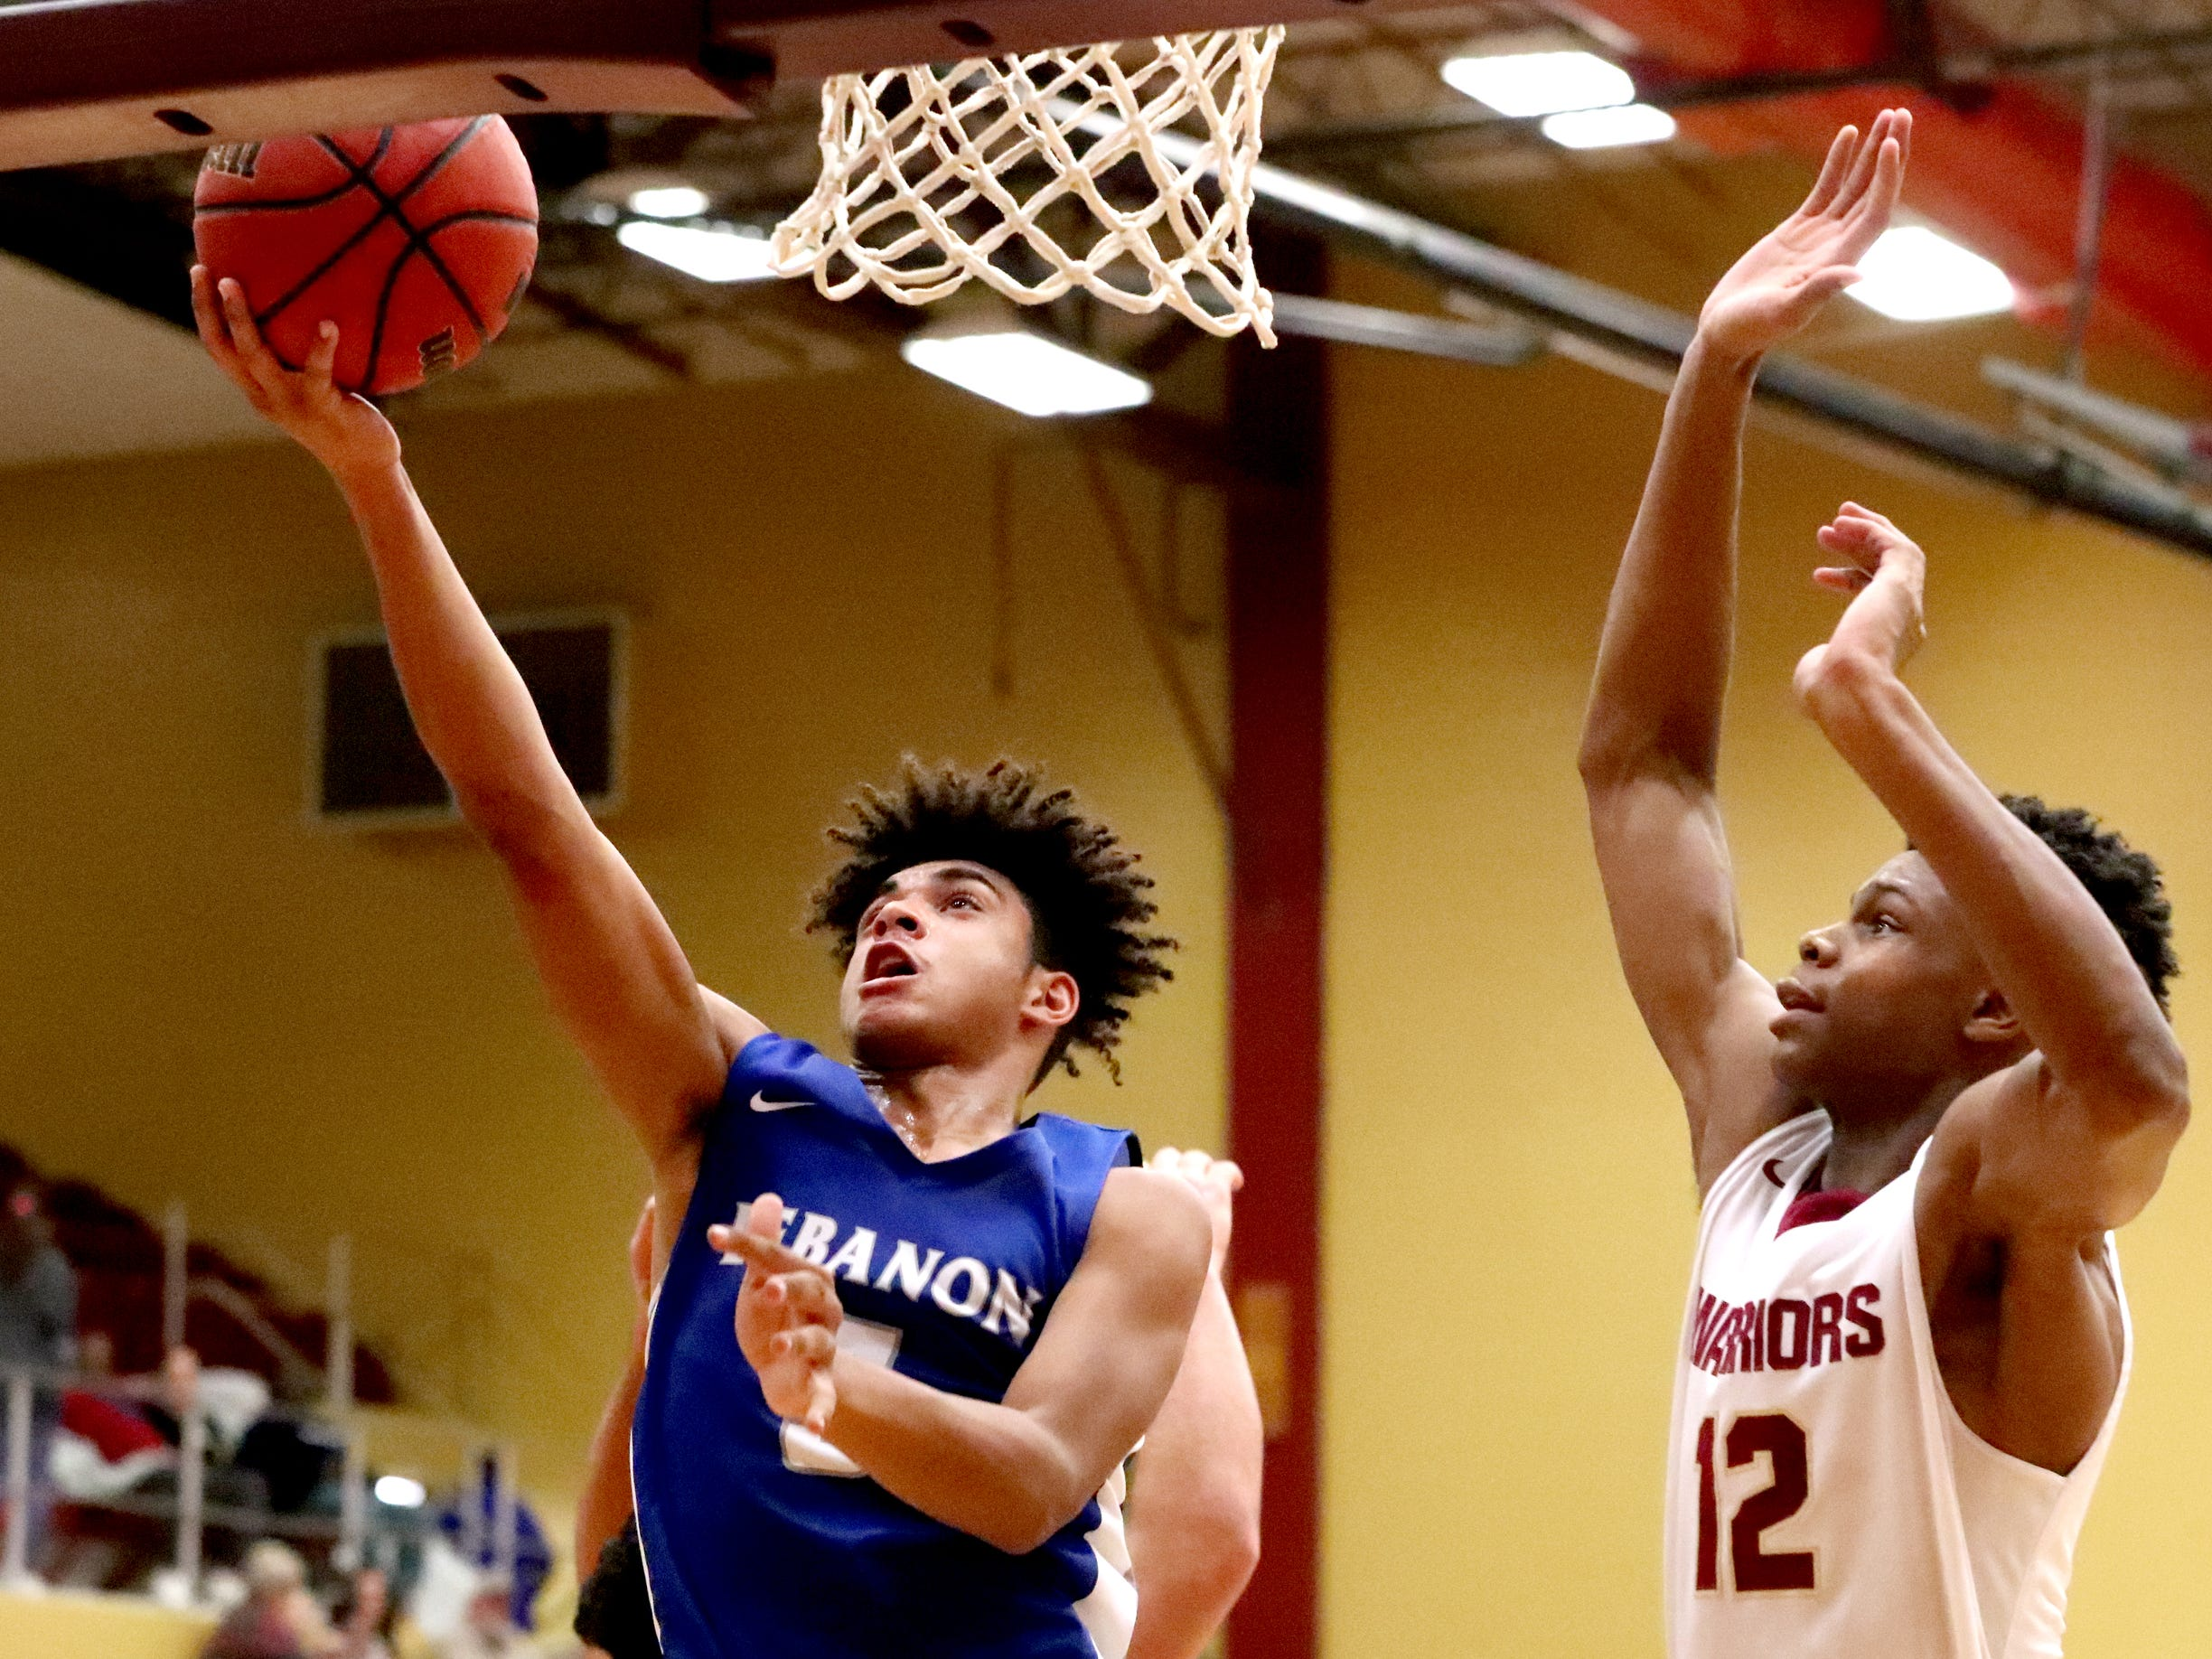 Lebanon's Jeremiah Hastings (5) goes up for a basket as RiverdaleÕs Elijah Cobb (12) guards him during the game at Riverdale on Friday, Nov. 30, 2018.